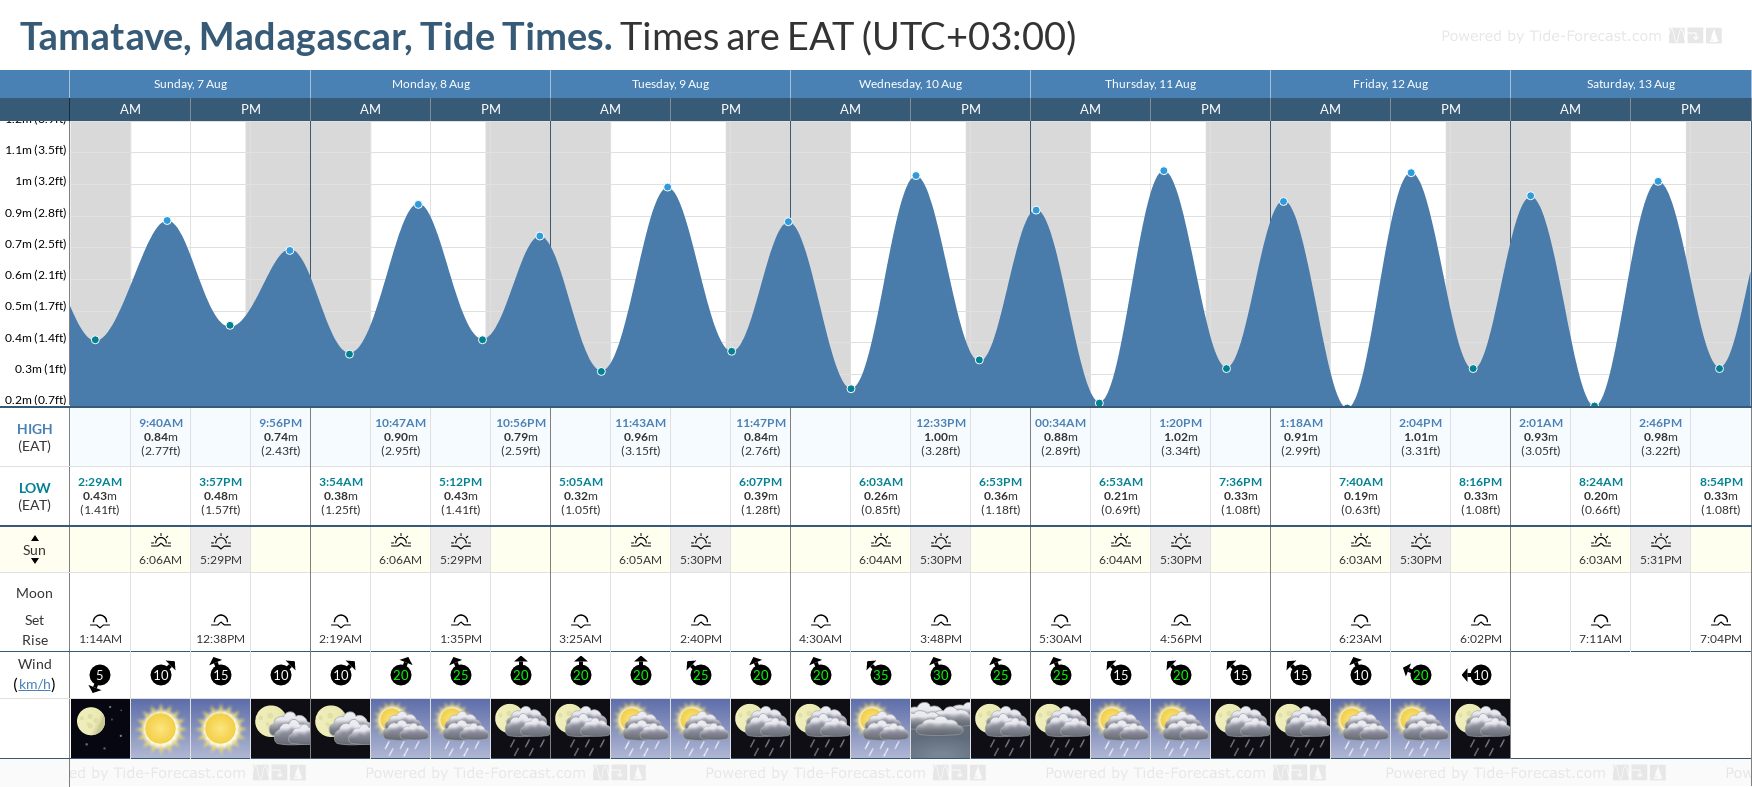 Tamatave, Madagascar Tide Chart including high and low tide tide times for the next 7 days